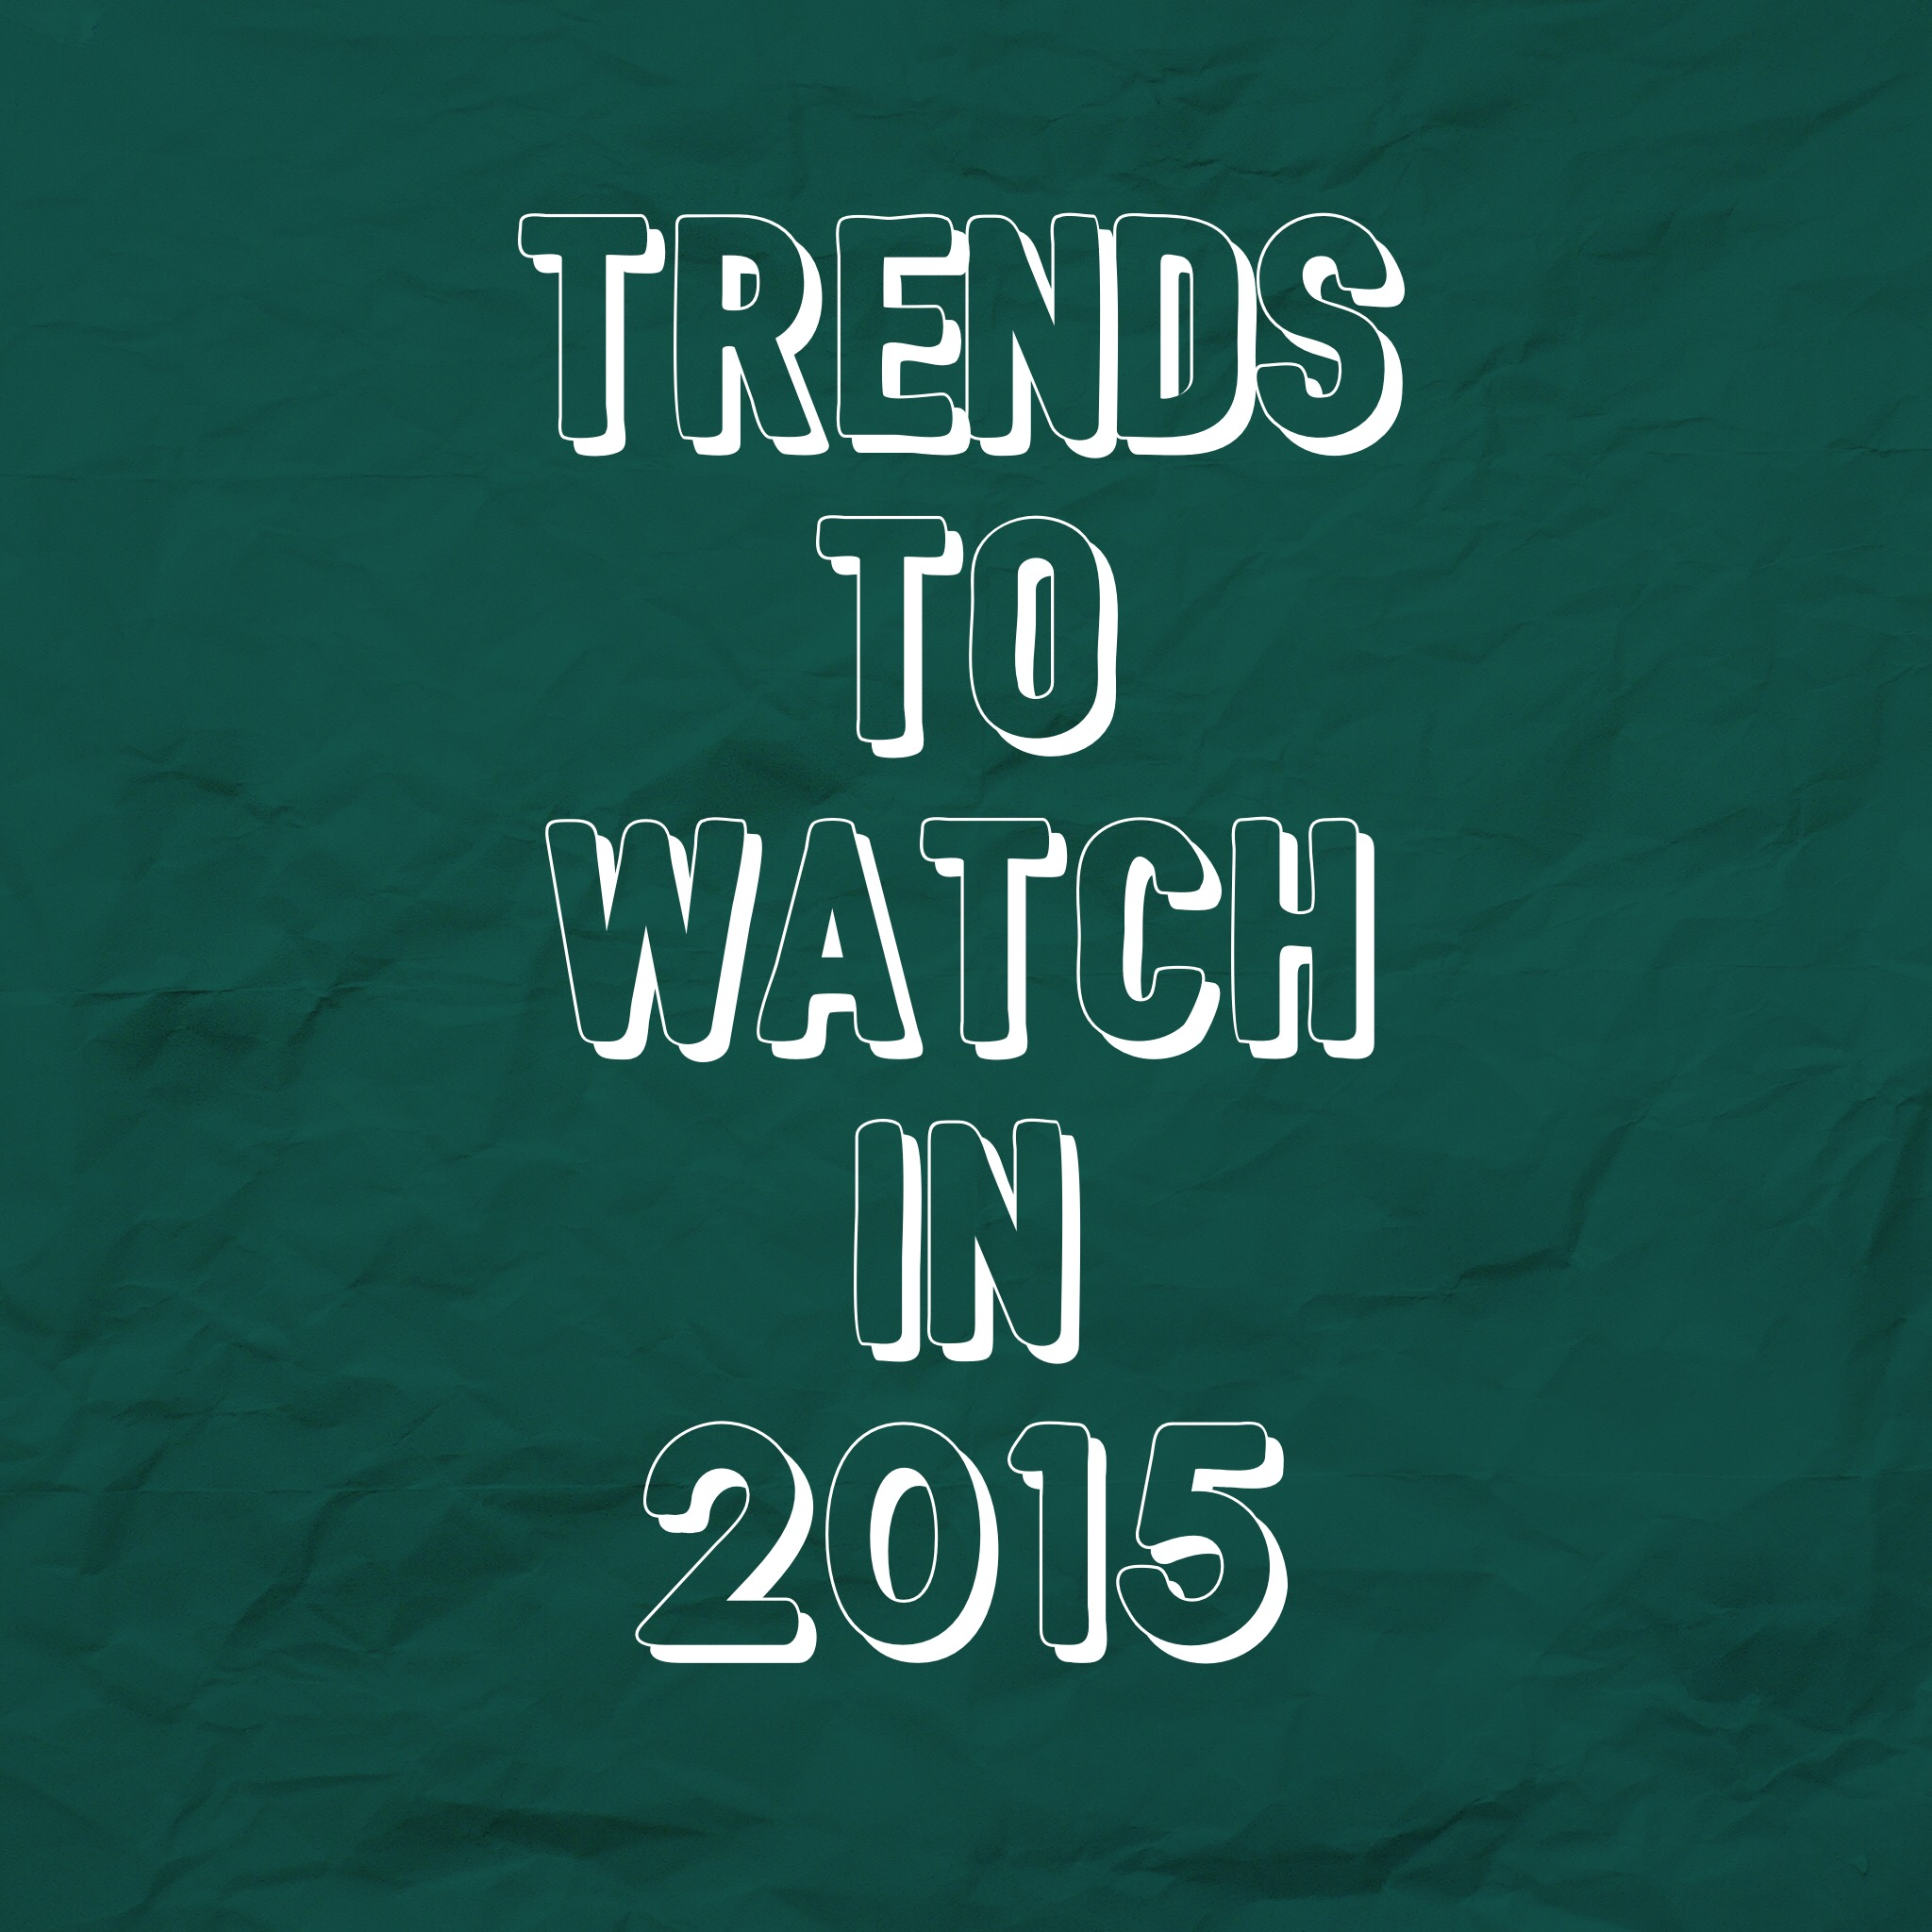 Trends to watch in 2015